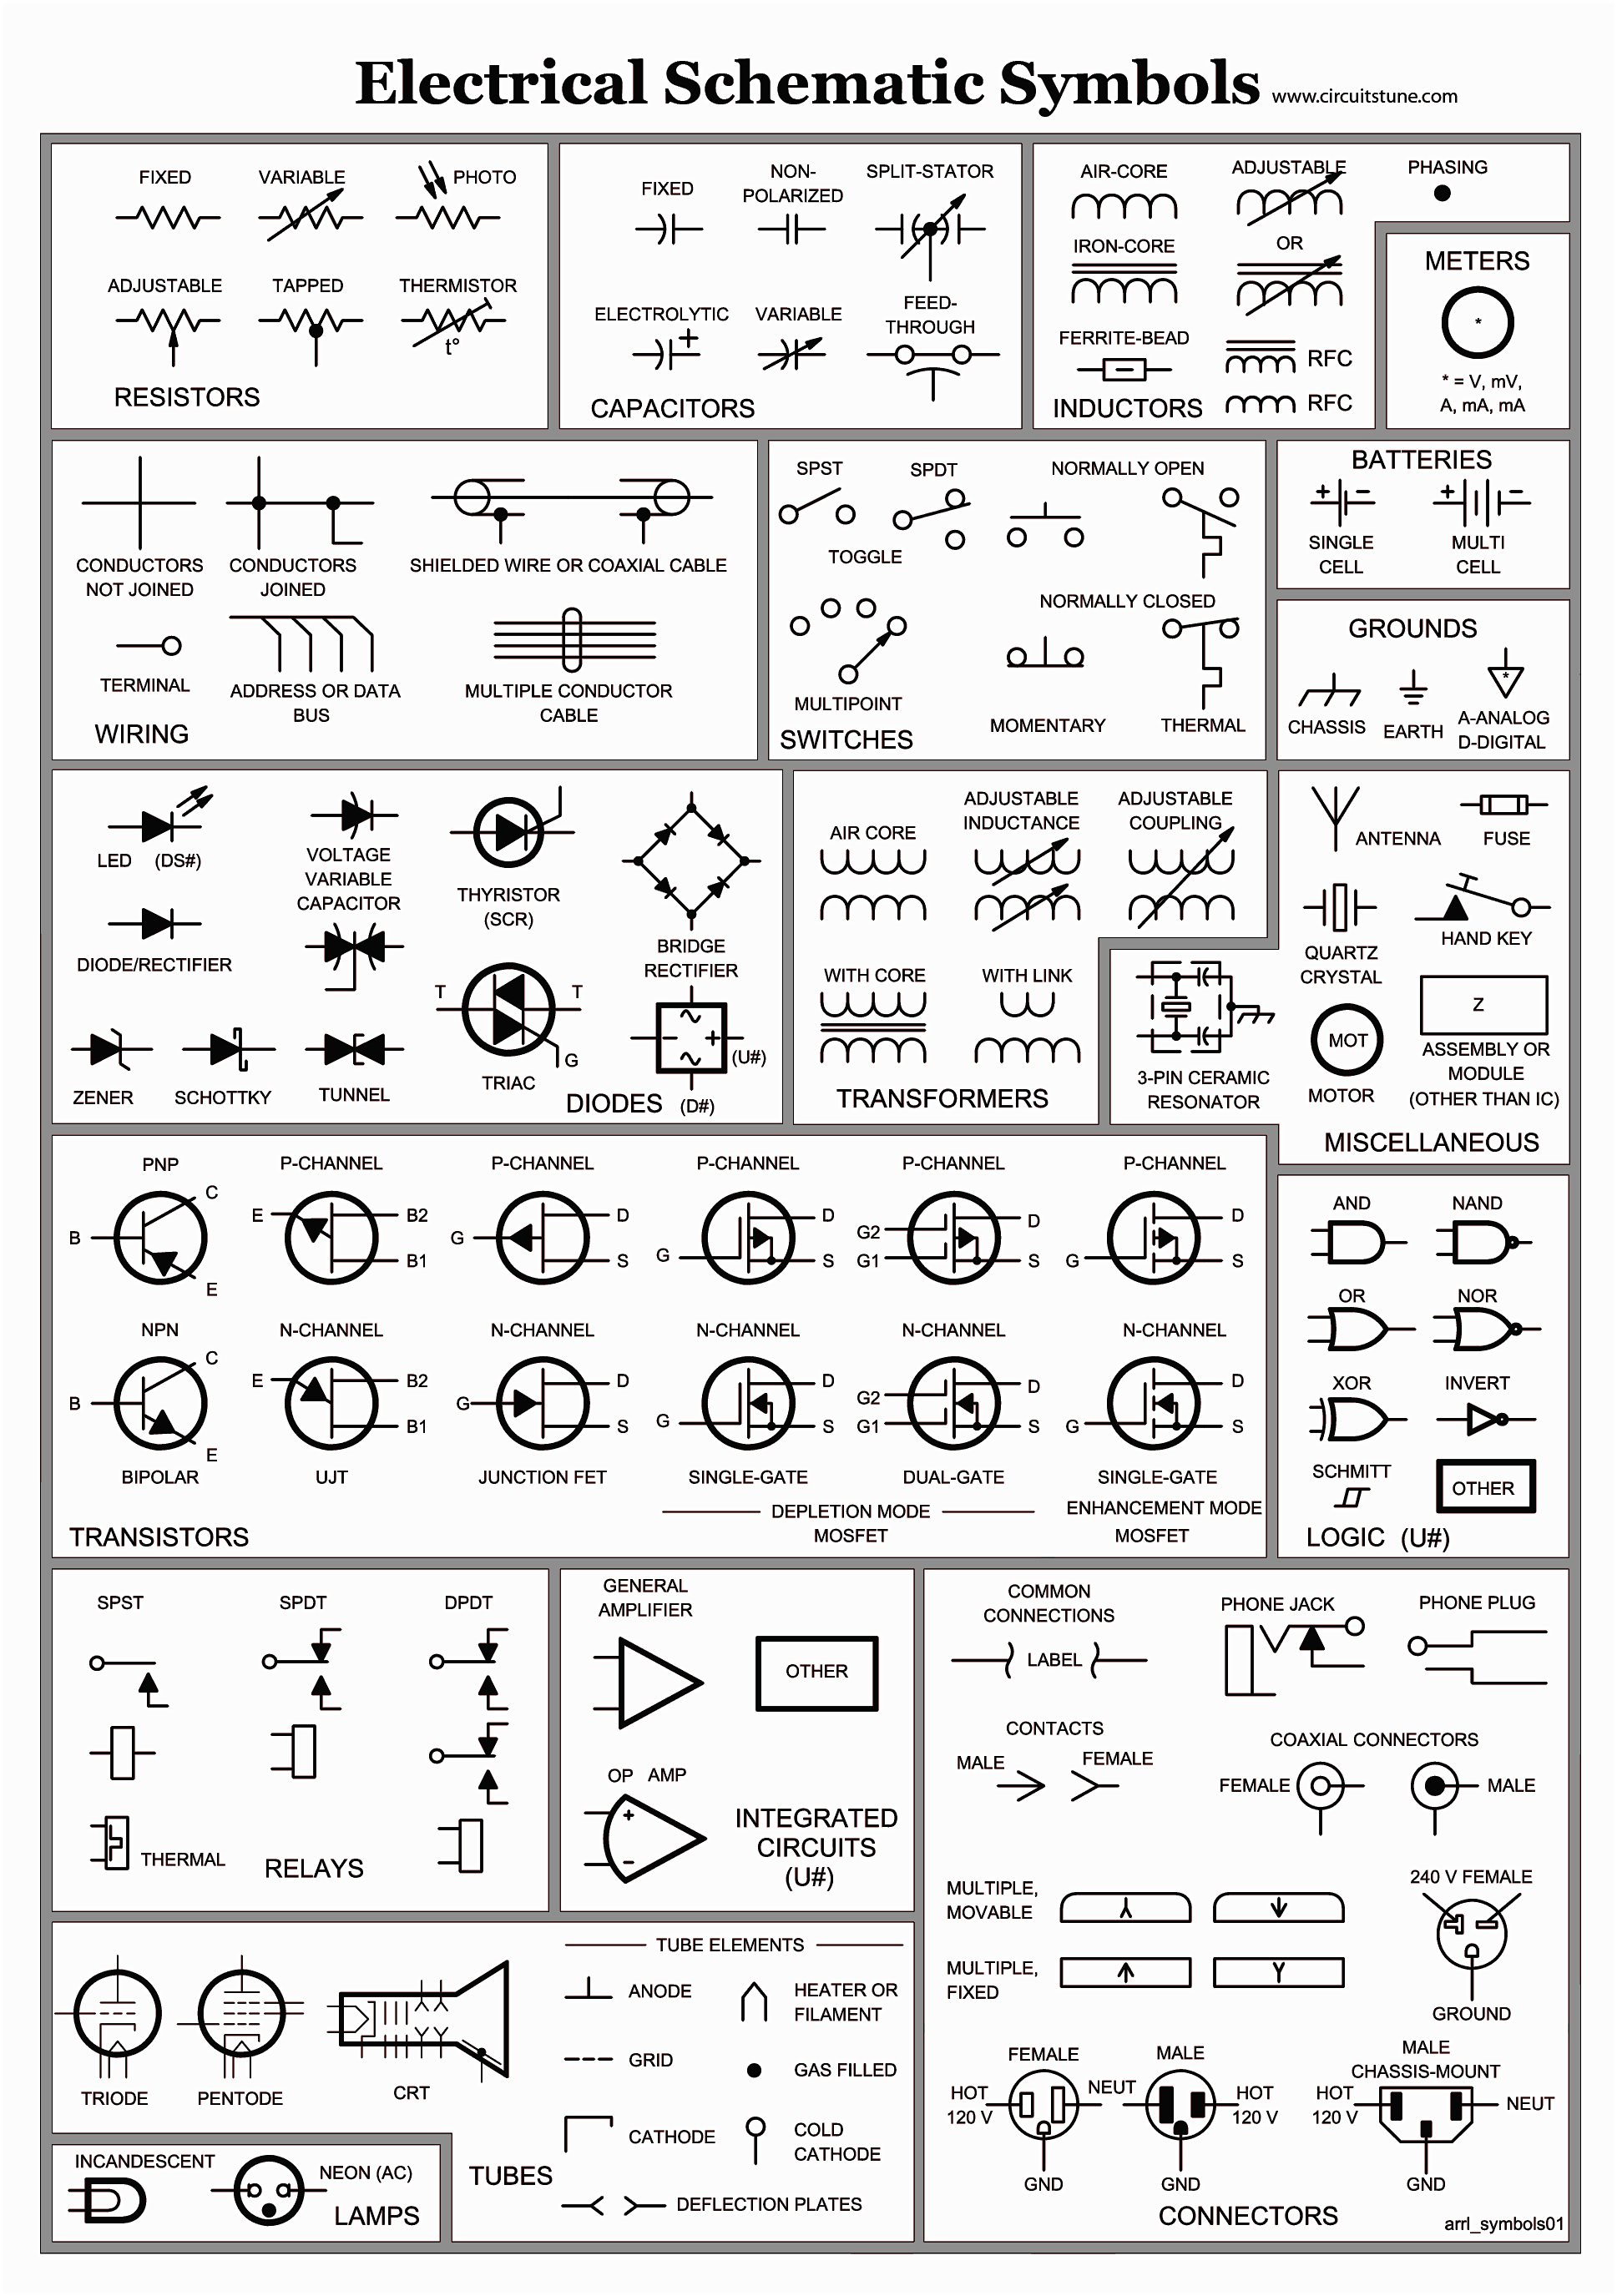 Building wiring symbols pdf simple electronic circuits wiring diagram reading how to read electrical drawings pdf for rh pinterest com japanese symbols and meanings man and his symbols pdf asfbconference2016 Image collections